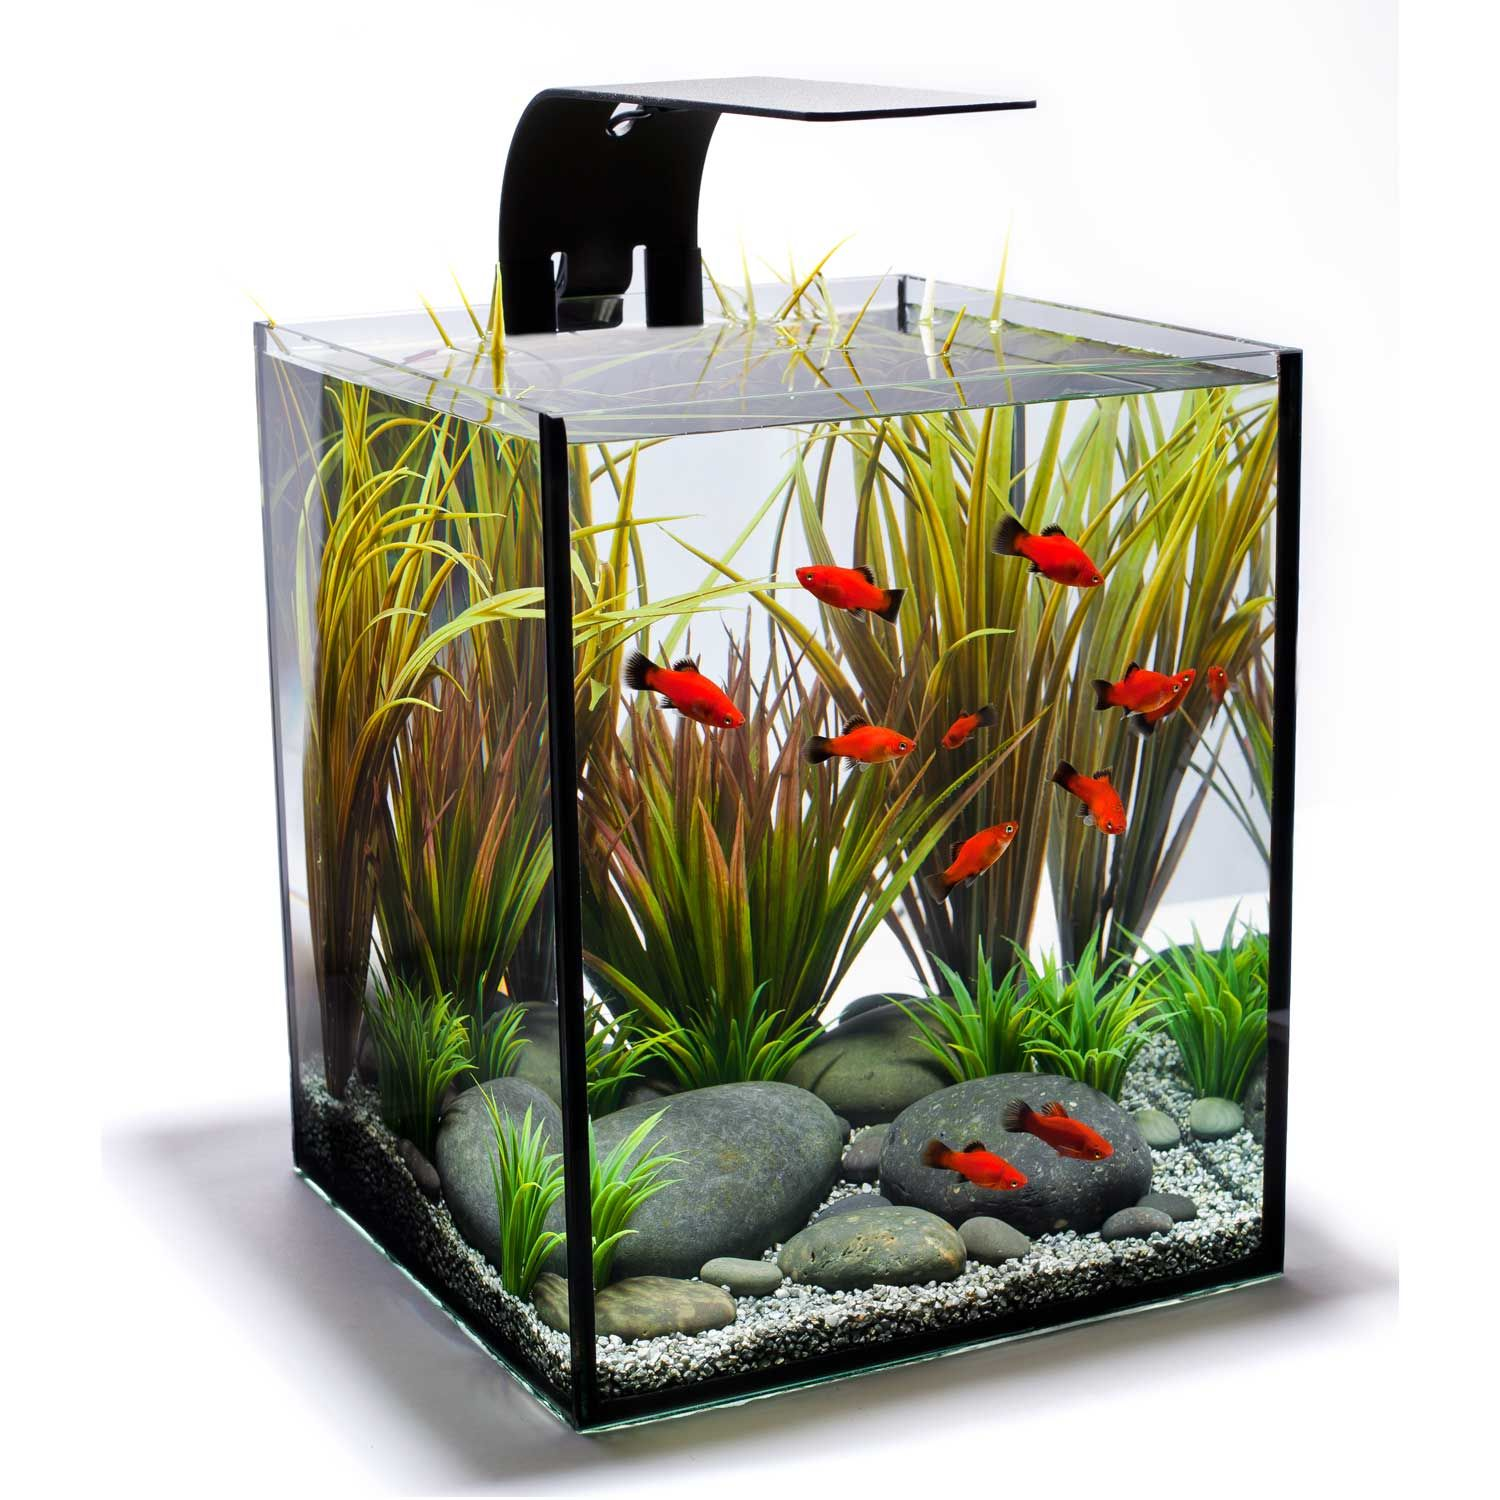 Fish aquarium how to maintain - Interested In A Small Easy To Maintain Aquarium Like This This One Is 109 99